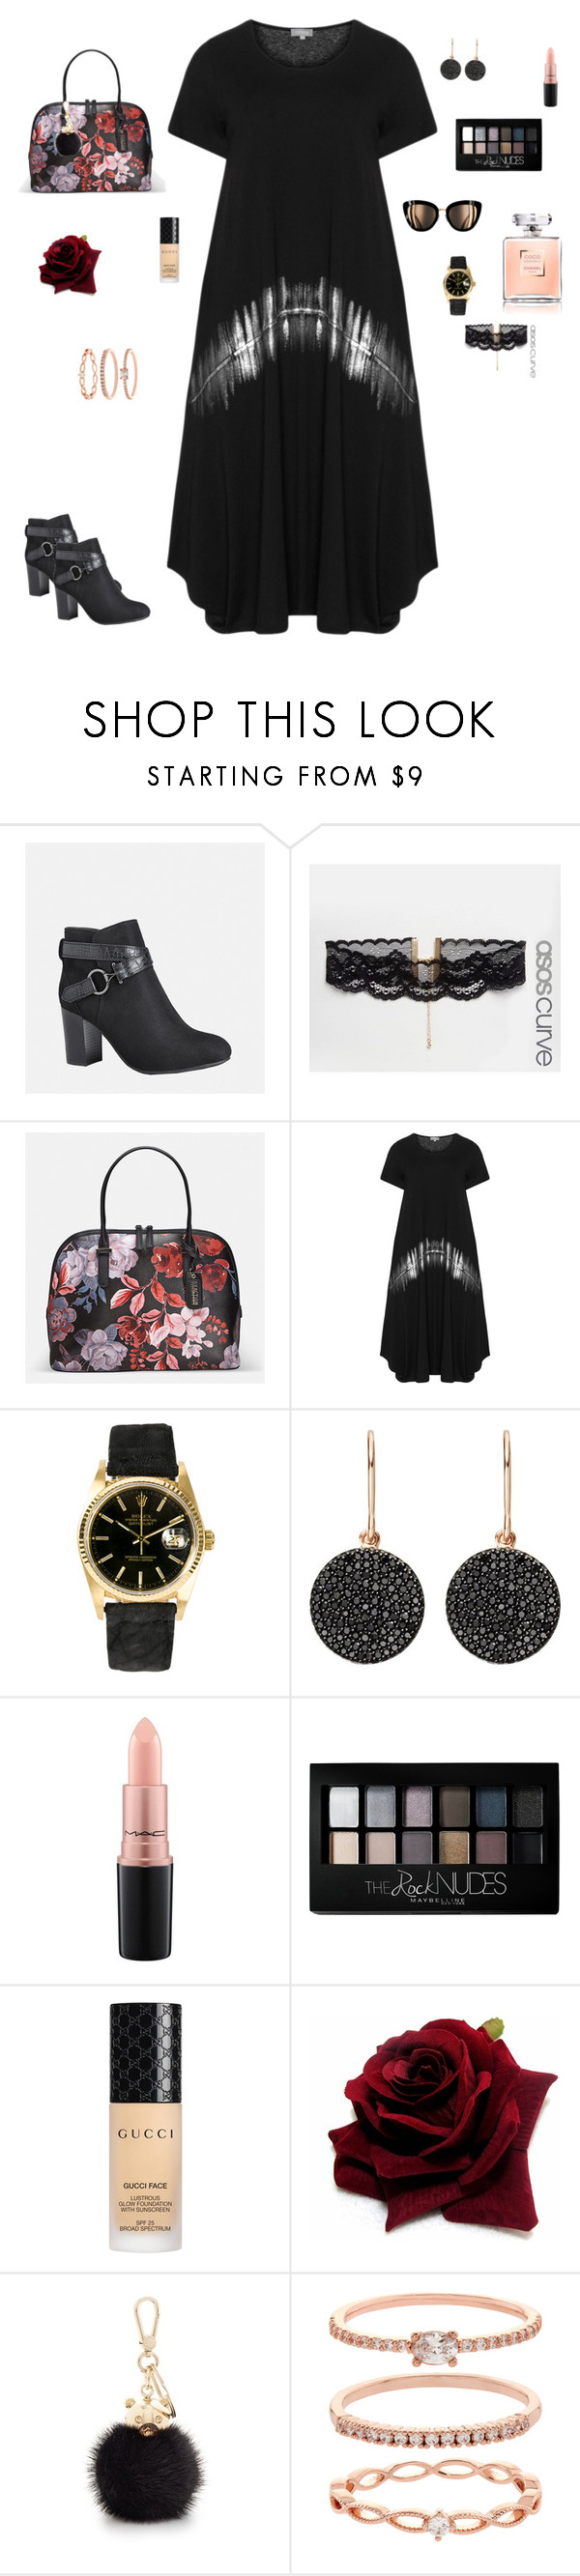 """""""First ✌️✌️"""" by fitriamaliag ❤ liked on Polyvore featuring Avenue, ASOS Curve, Rolex, Astley Clarke, MAC Cosmetics, Maybelline, Gucci, Furla and Accessorize"""